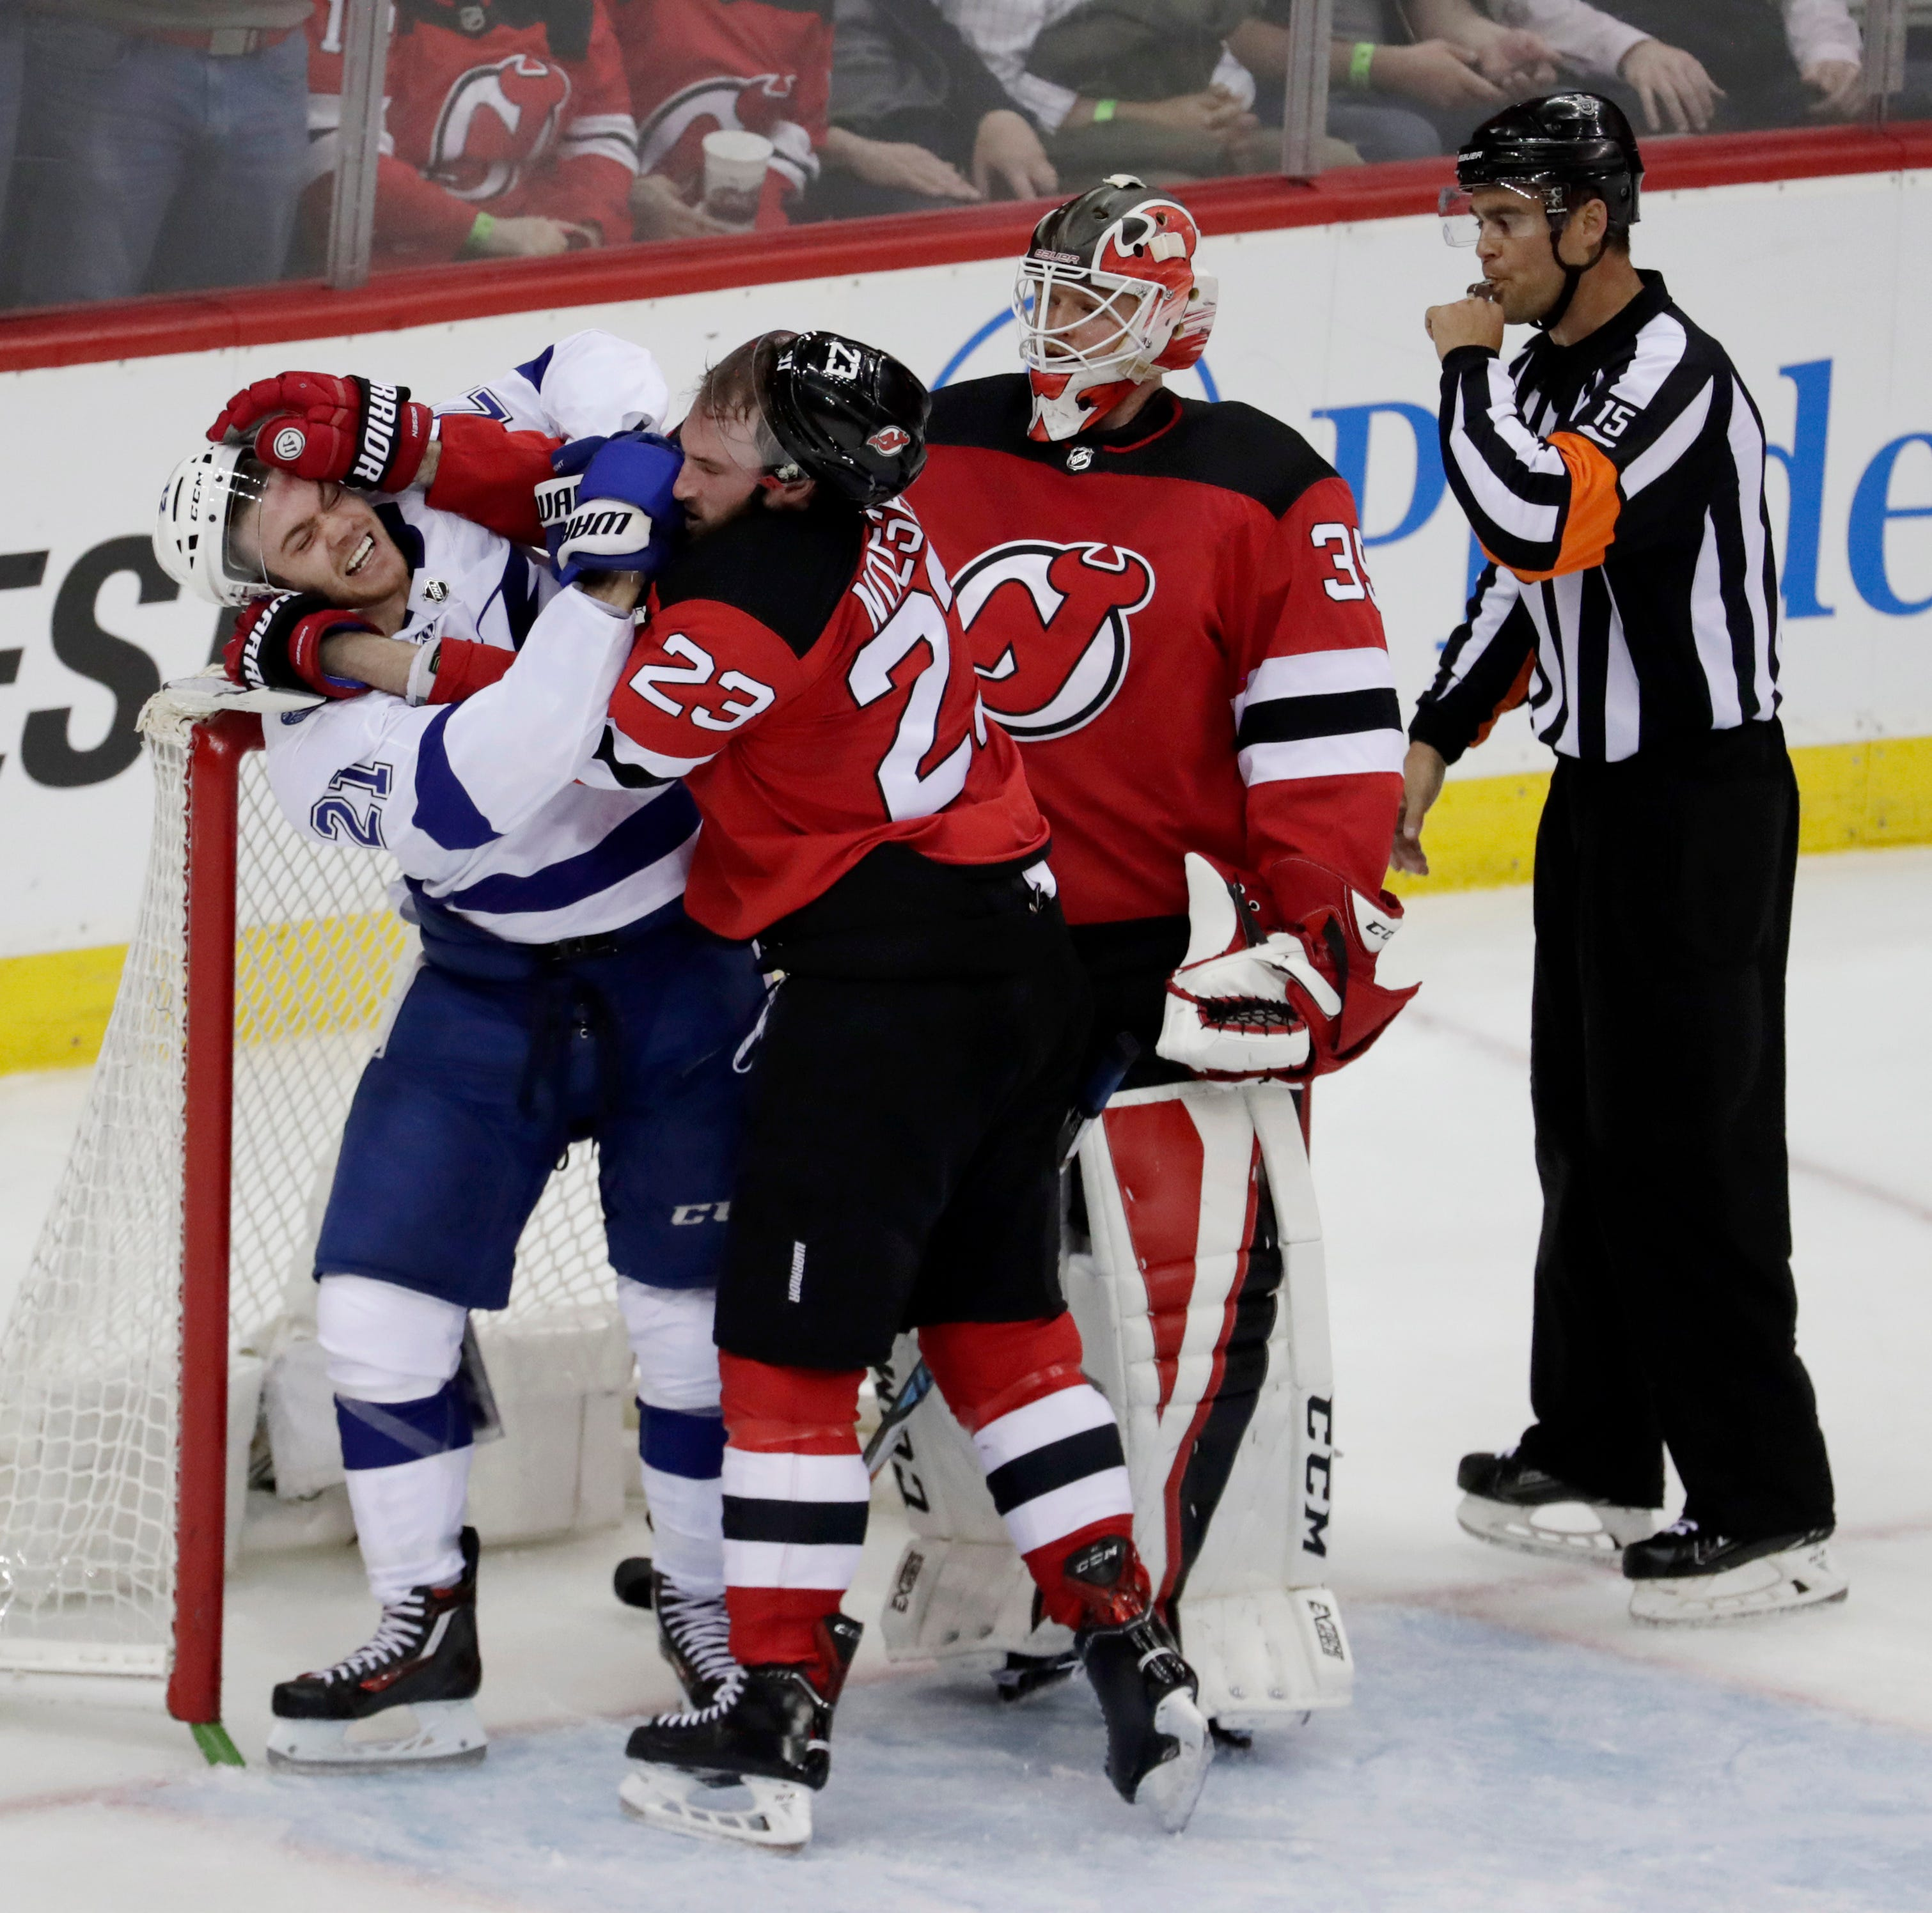 Hall has goal, 2 assists as Devils rally past Lightning, 5-2